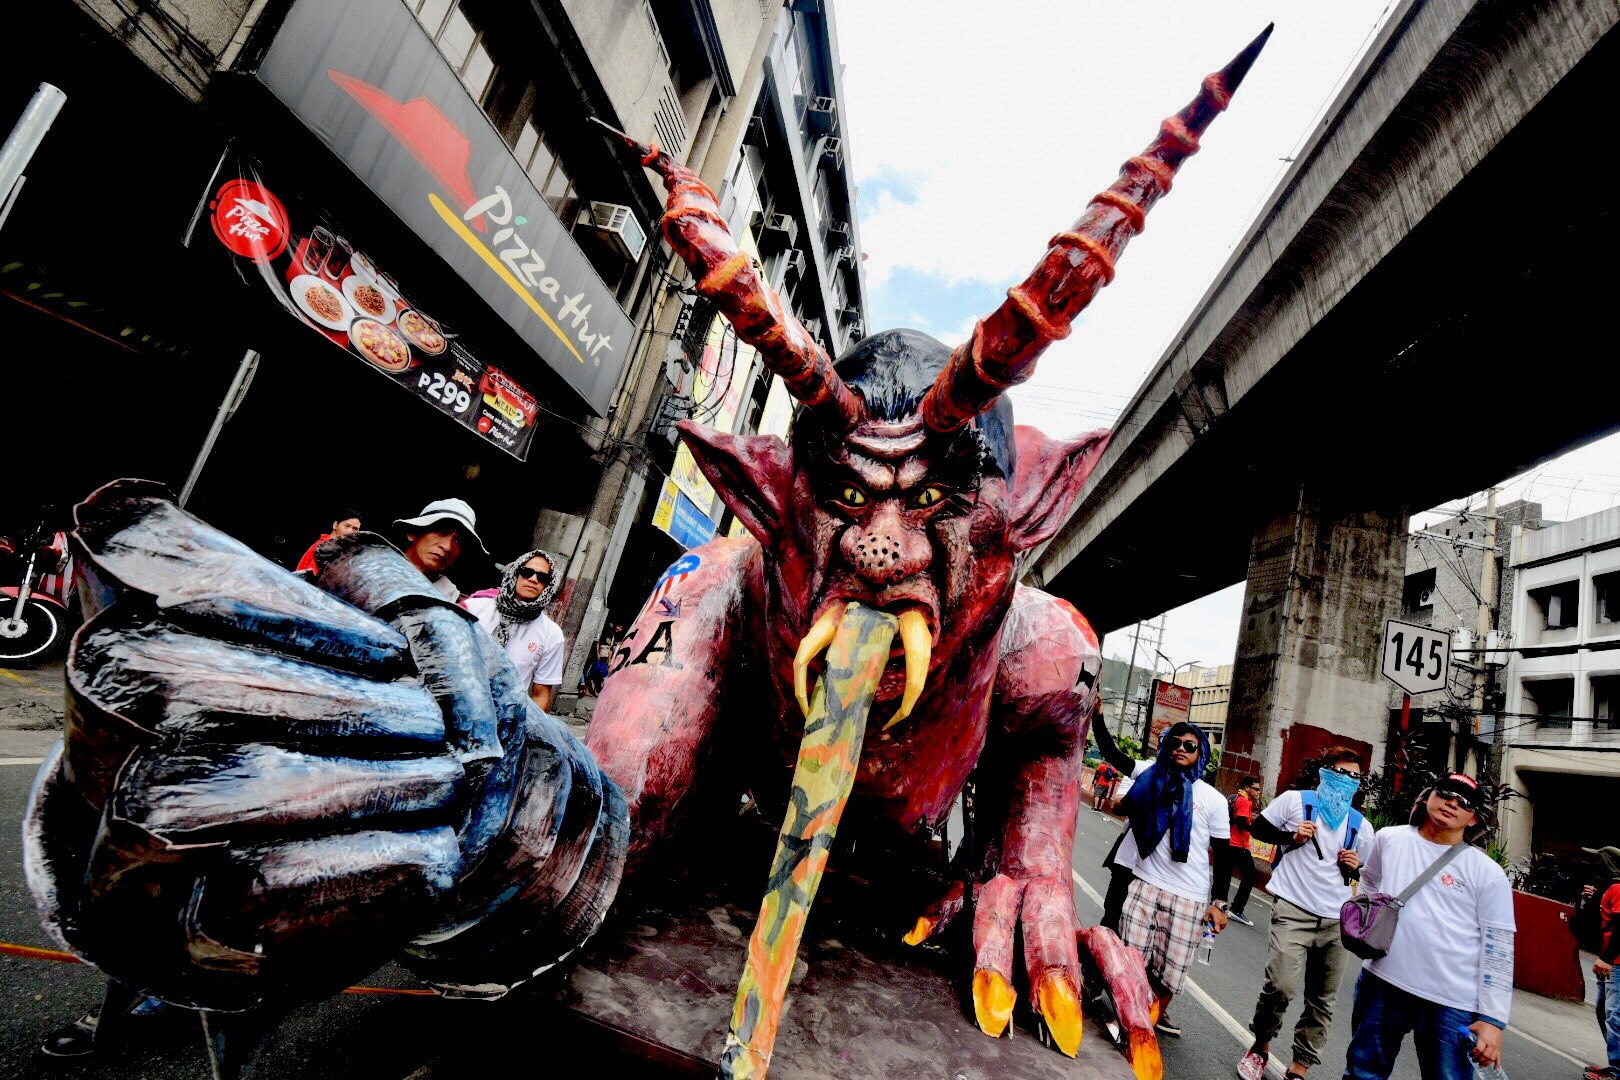 BURN. Called u0022Dutertemonyo,u0022 an effigy depicting the face of Duterte as a demon was later burned during the demonstration. Photo by Alecs Ongcal/Rappler